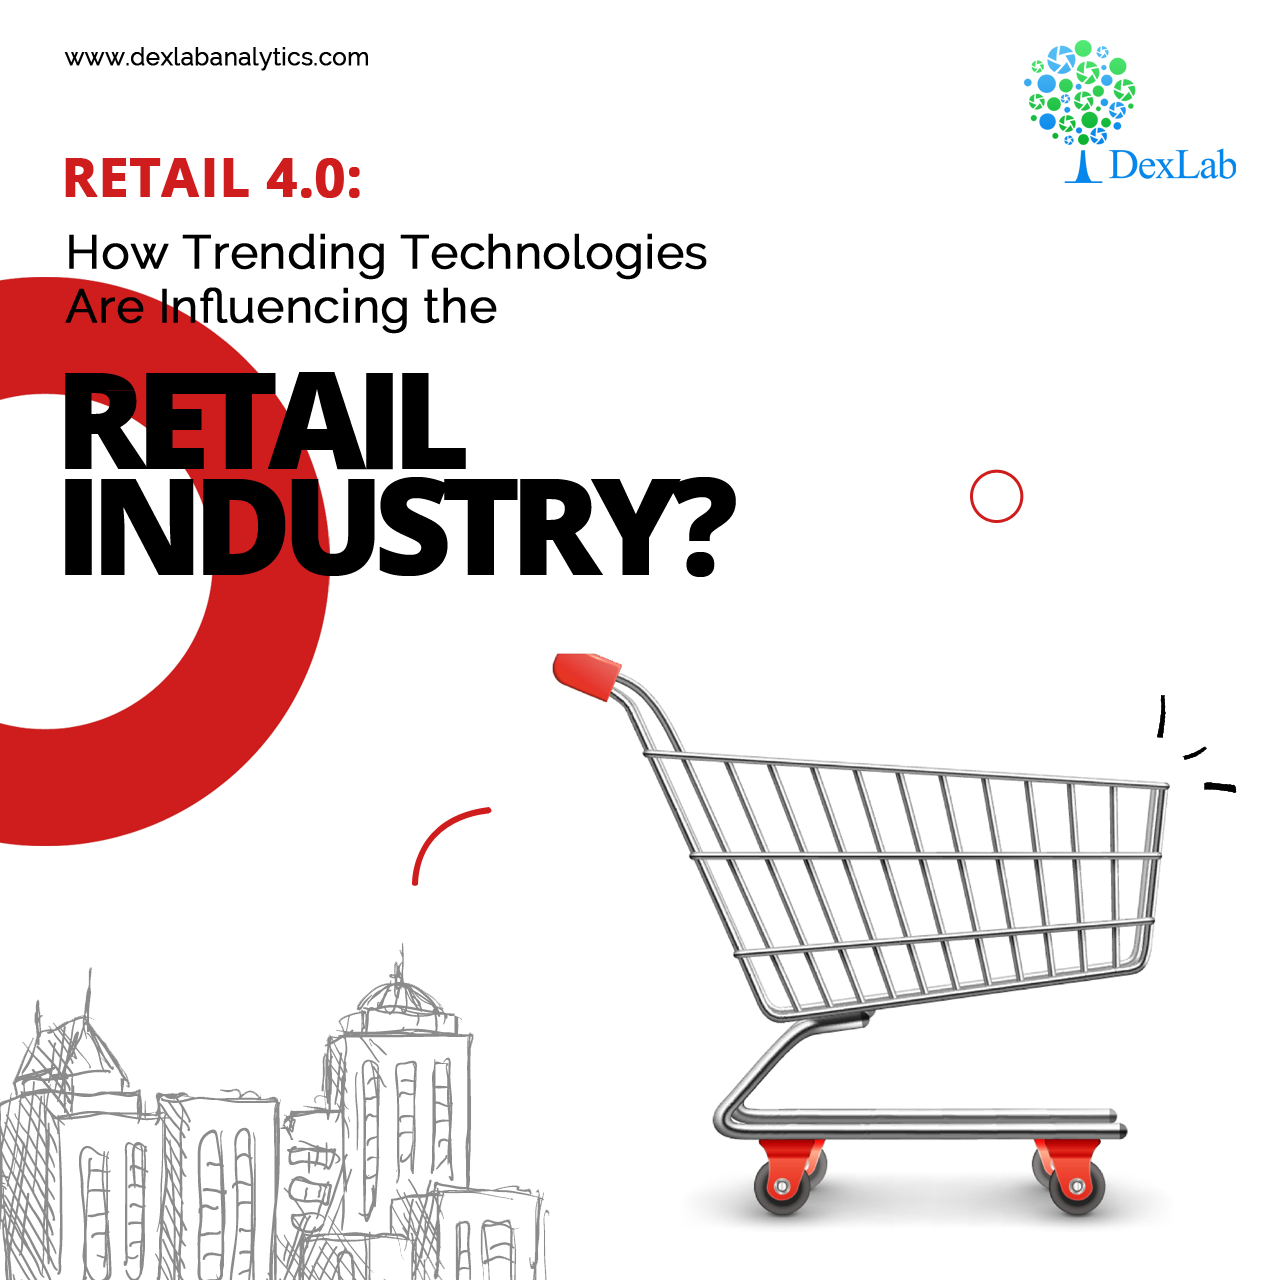 Retail 4 0 How Trending Technologies Are Influencing The Retail Industry Technology Trends Technology Emerging Technology